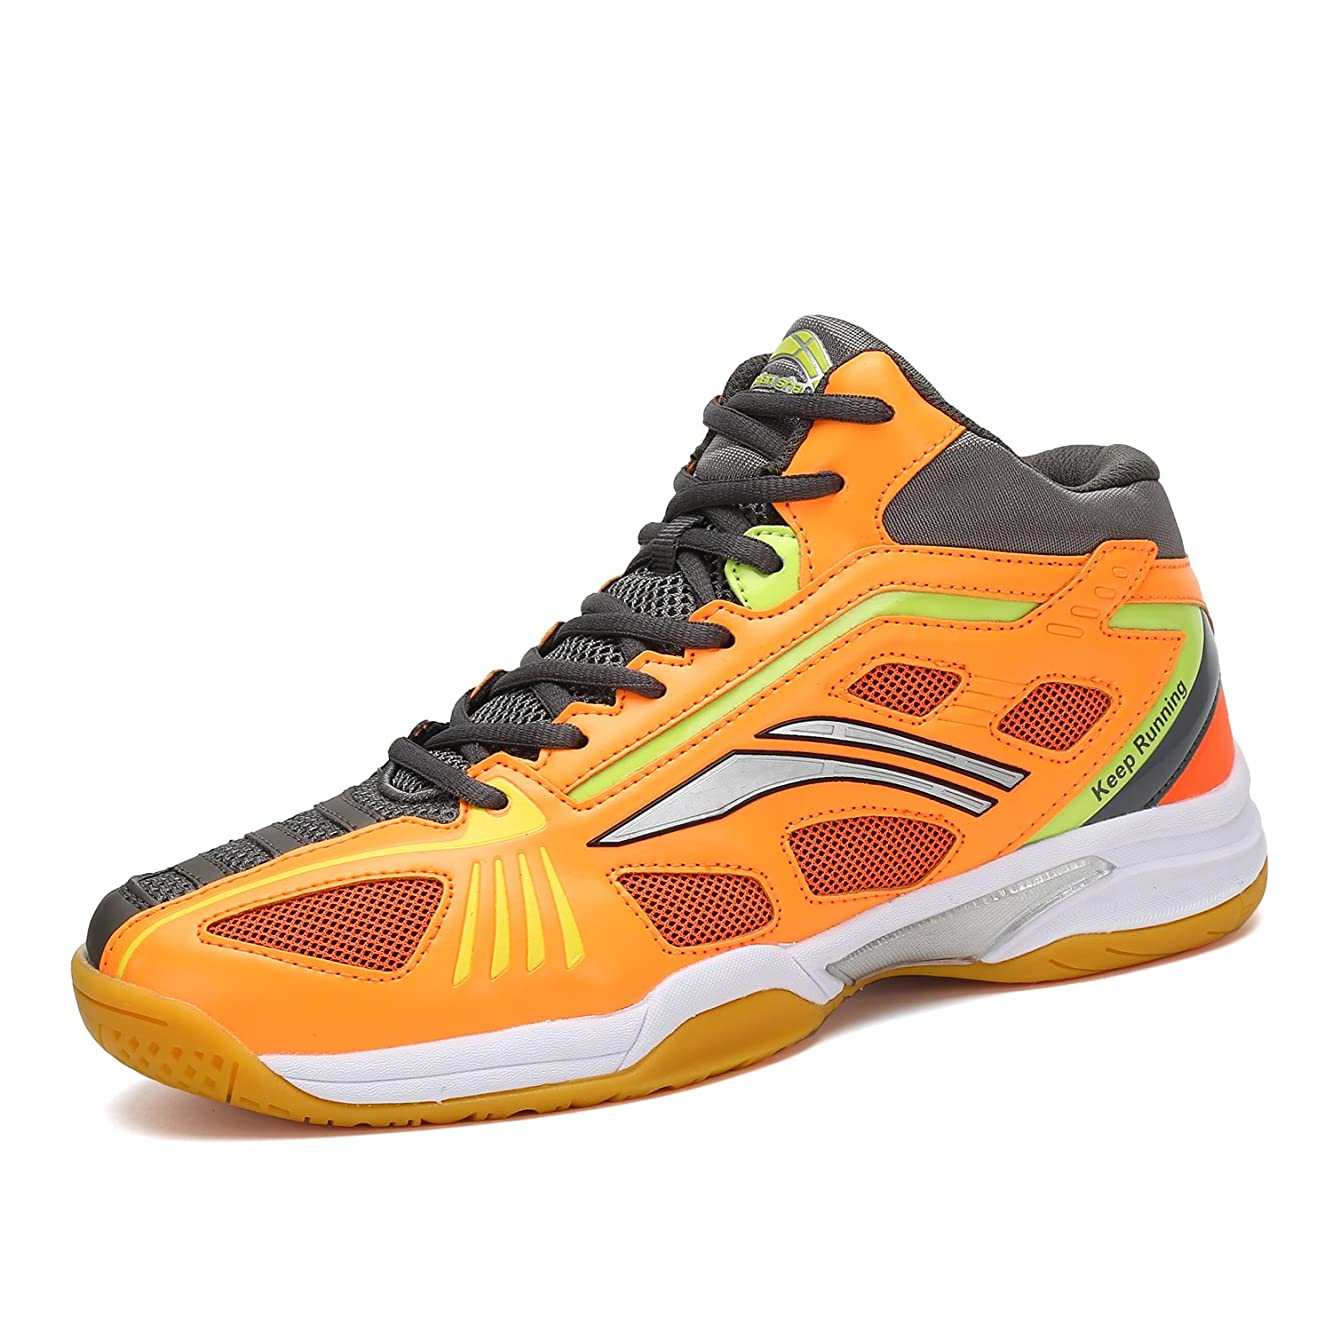 Mishansha Badminton Shoes for Men Non Slip Indoor Court Volleyball Tennis Sneakers Safety Training Shoe